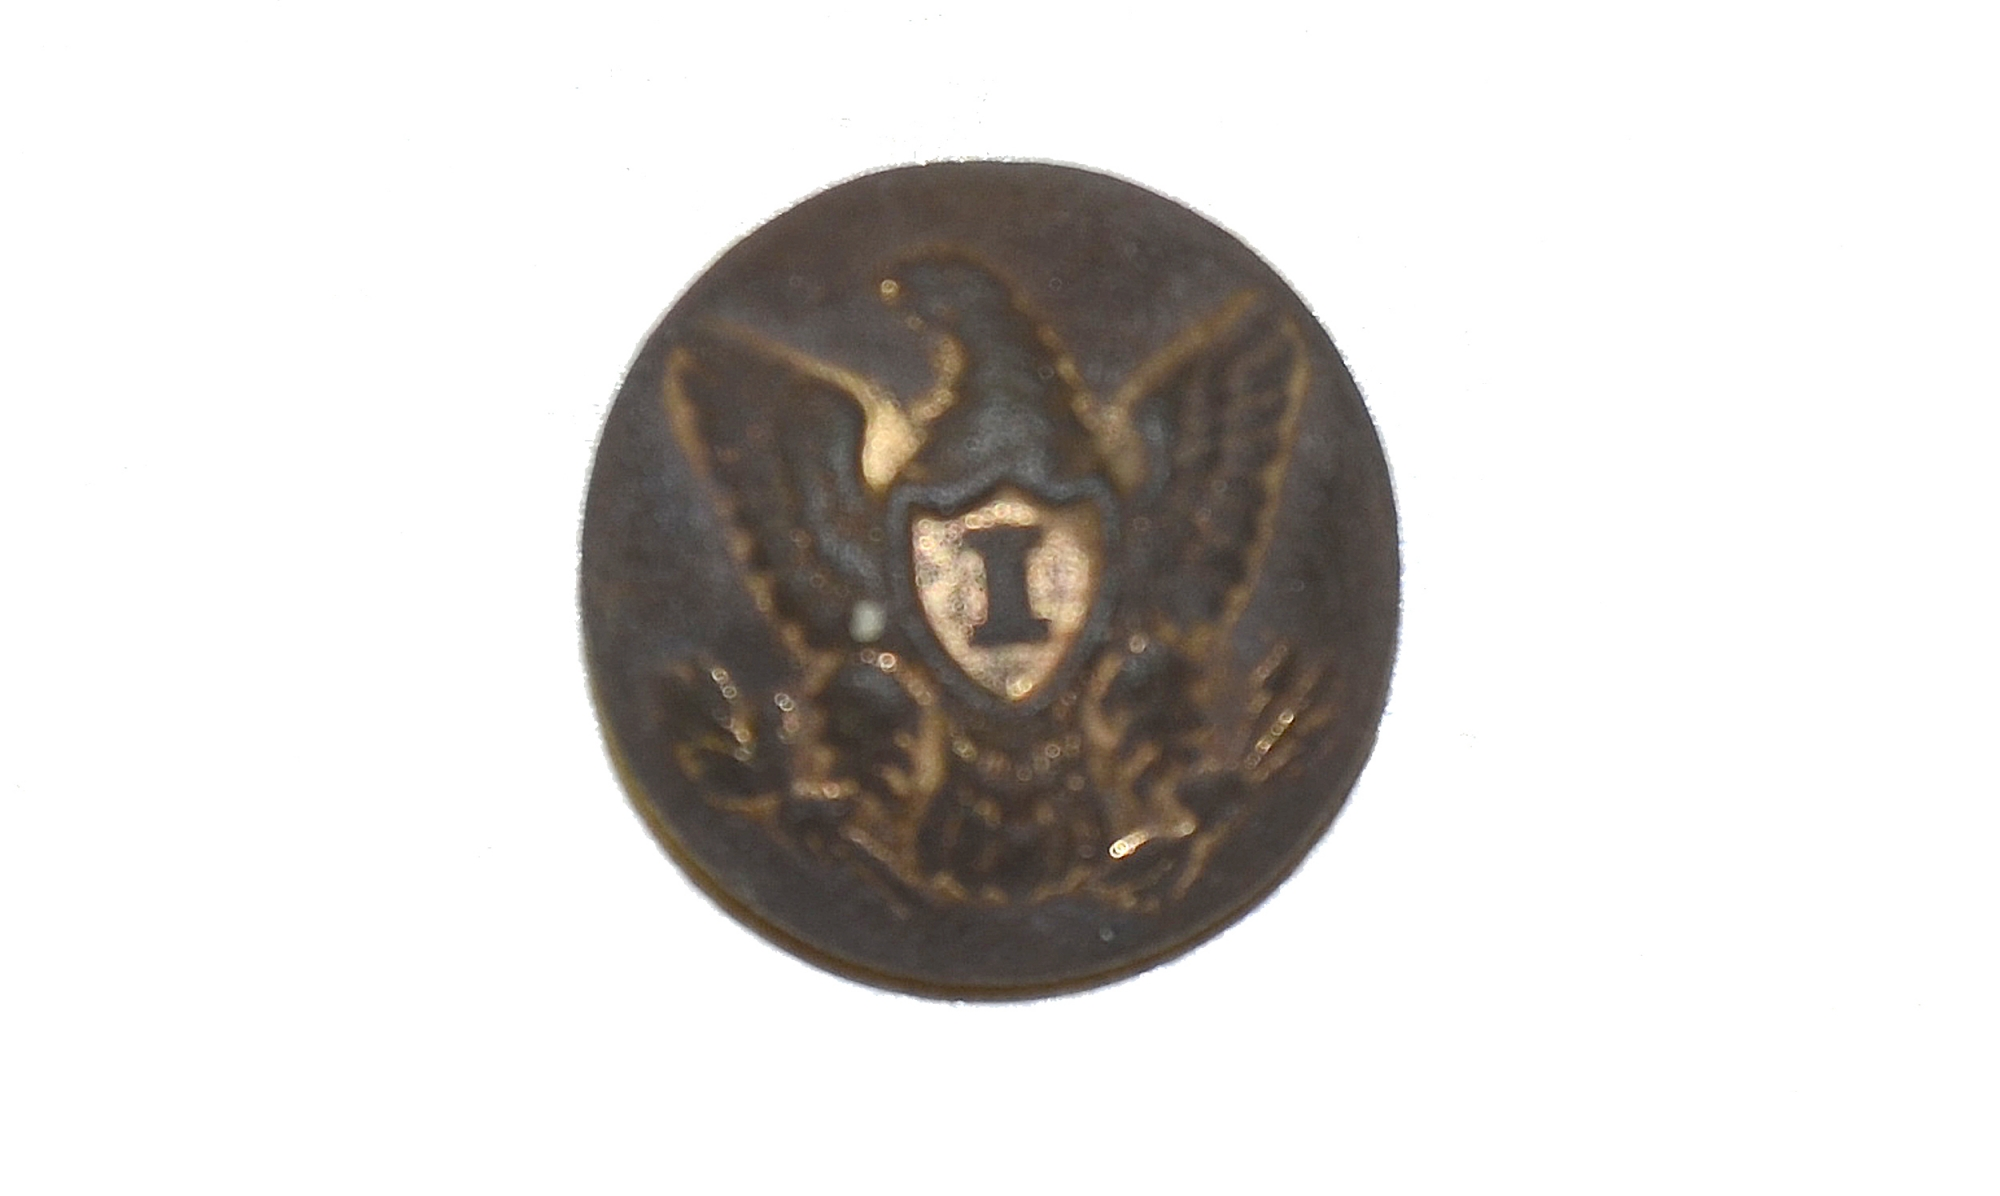 PATTERN 1851 OFFICERS EAGLE I CUFF SIZE BUTTON FROM THE GETTYSBURG ROSENSTEEL COLLECTION